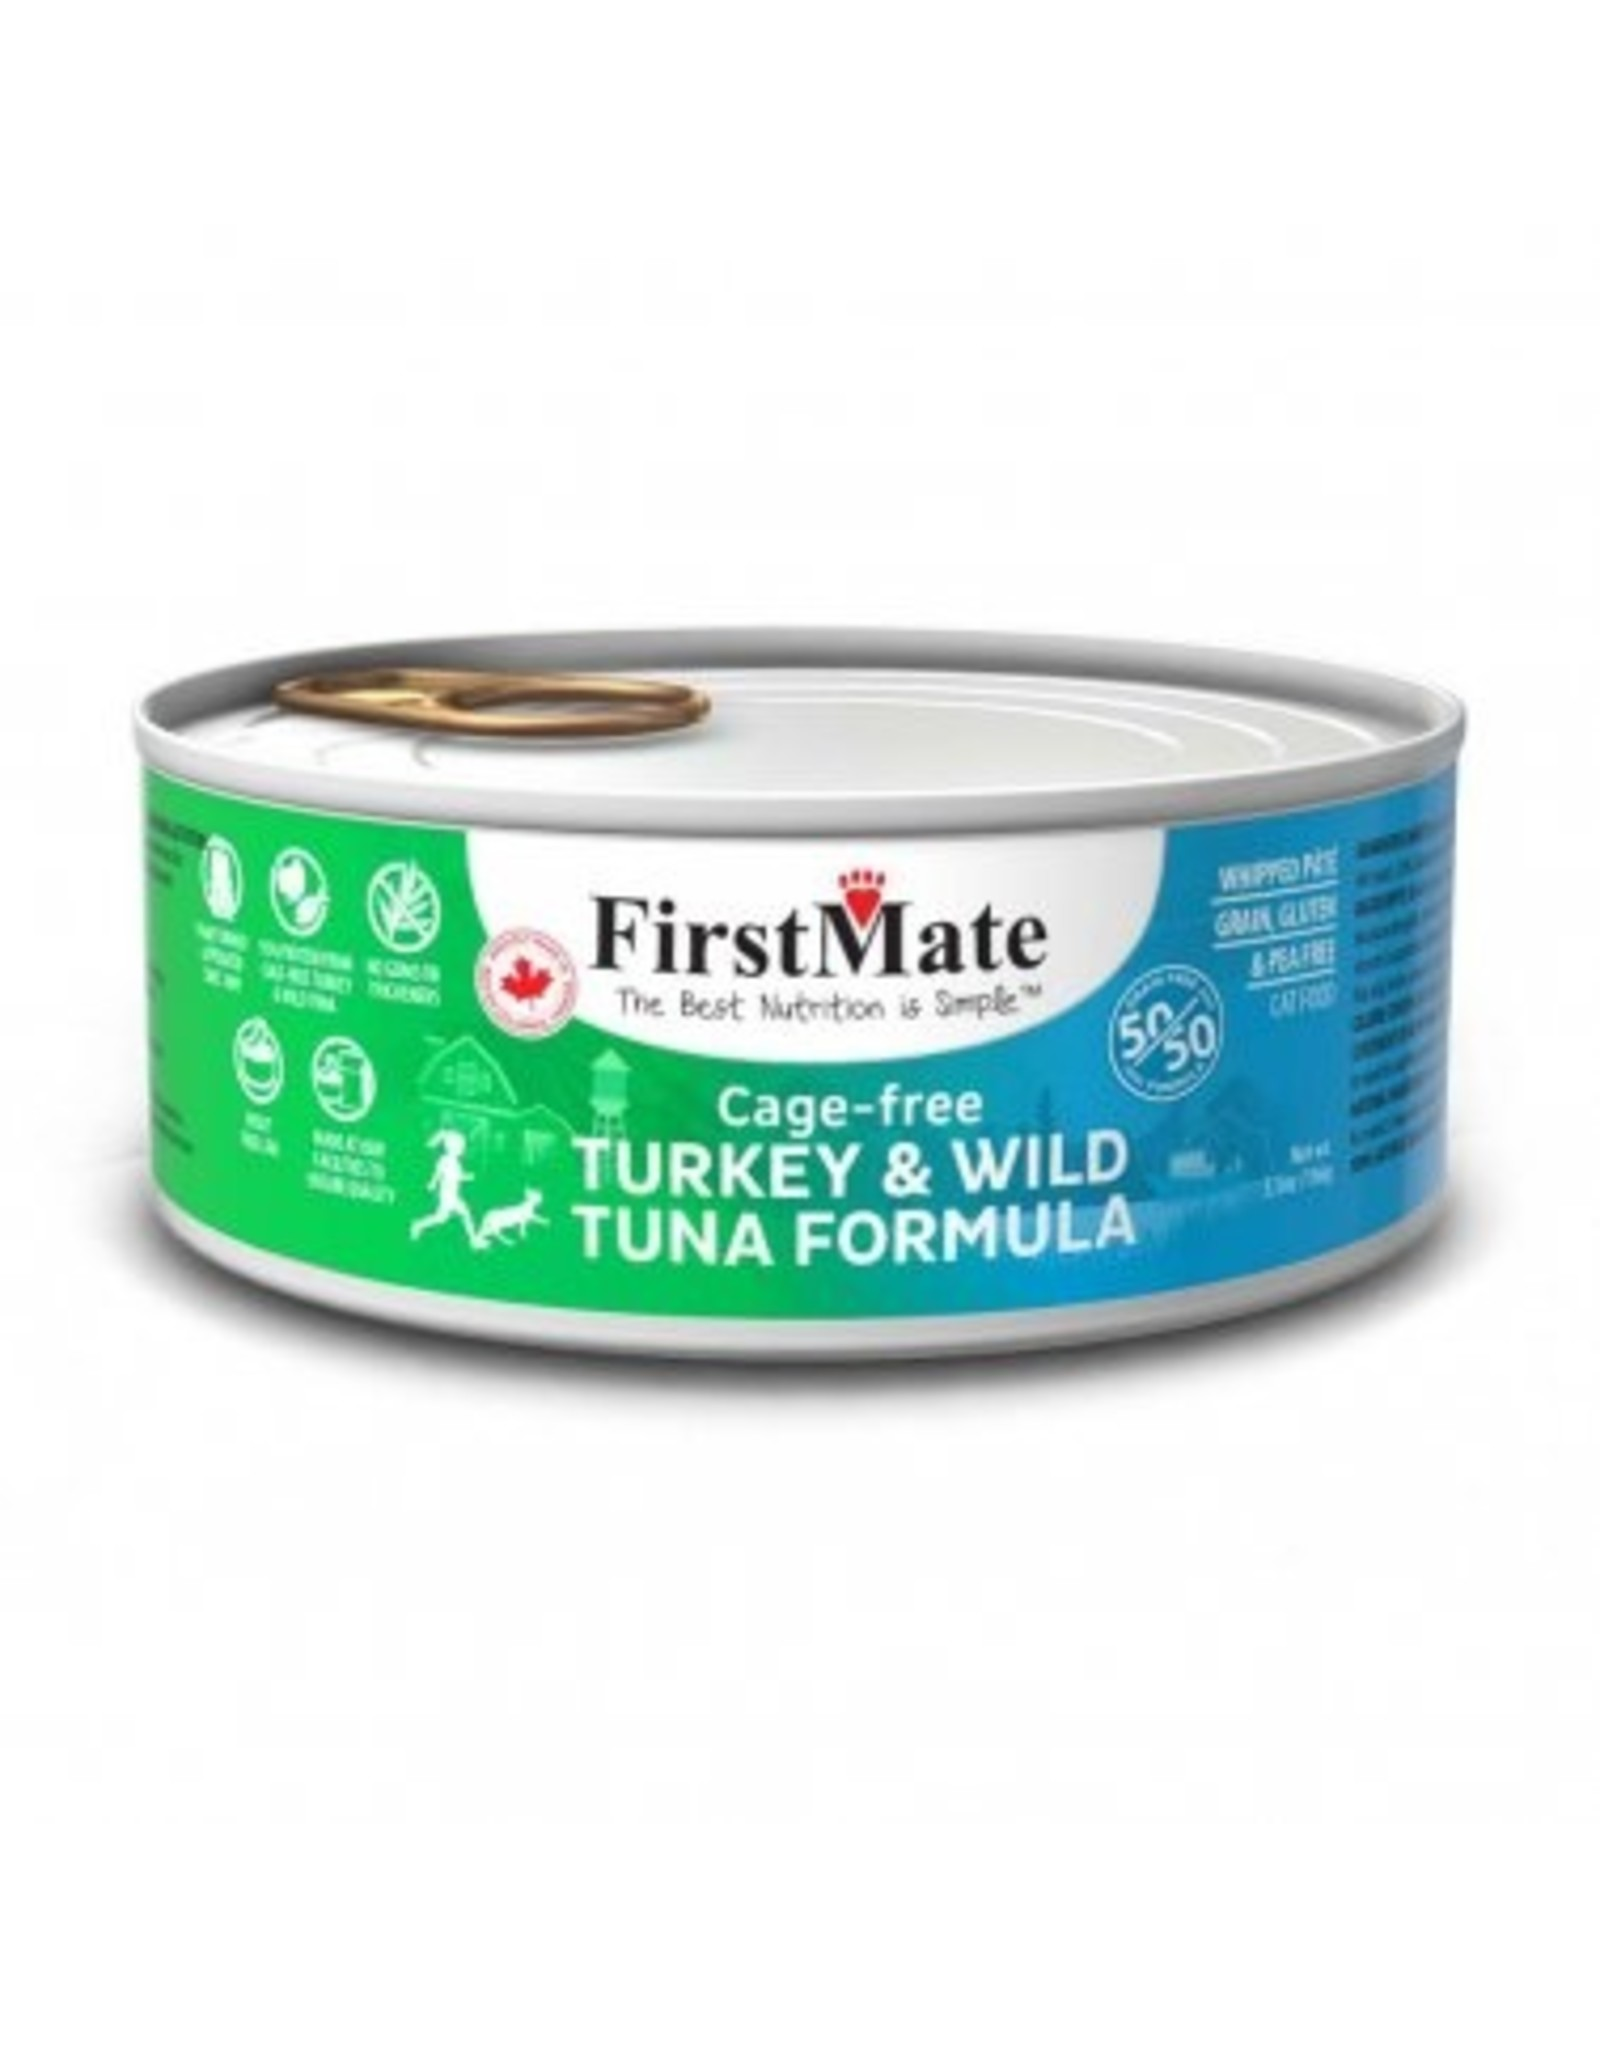 FirstMate FIRSTMATE CAT 50/50 TURKEY TUNA 5.5OZ